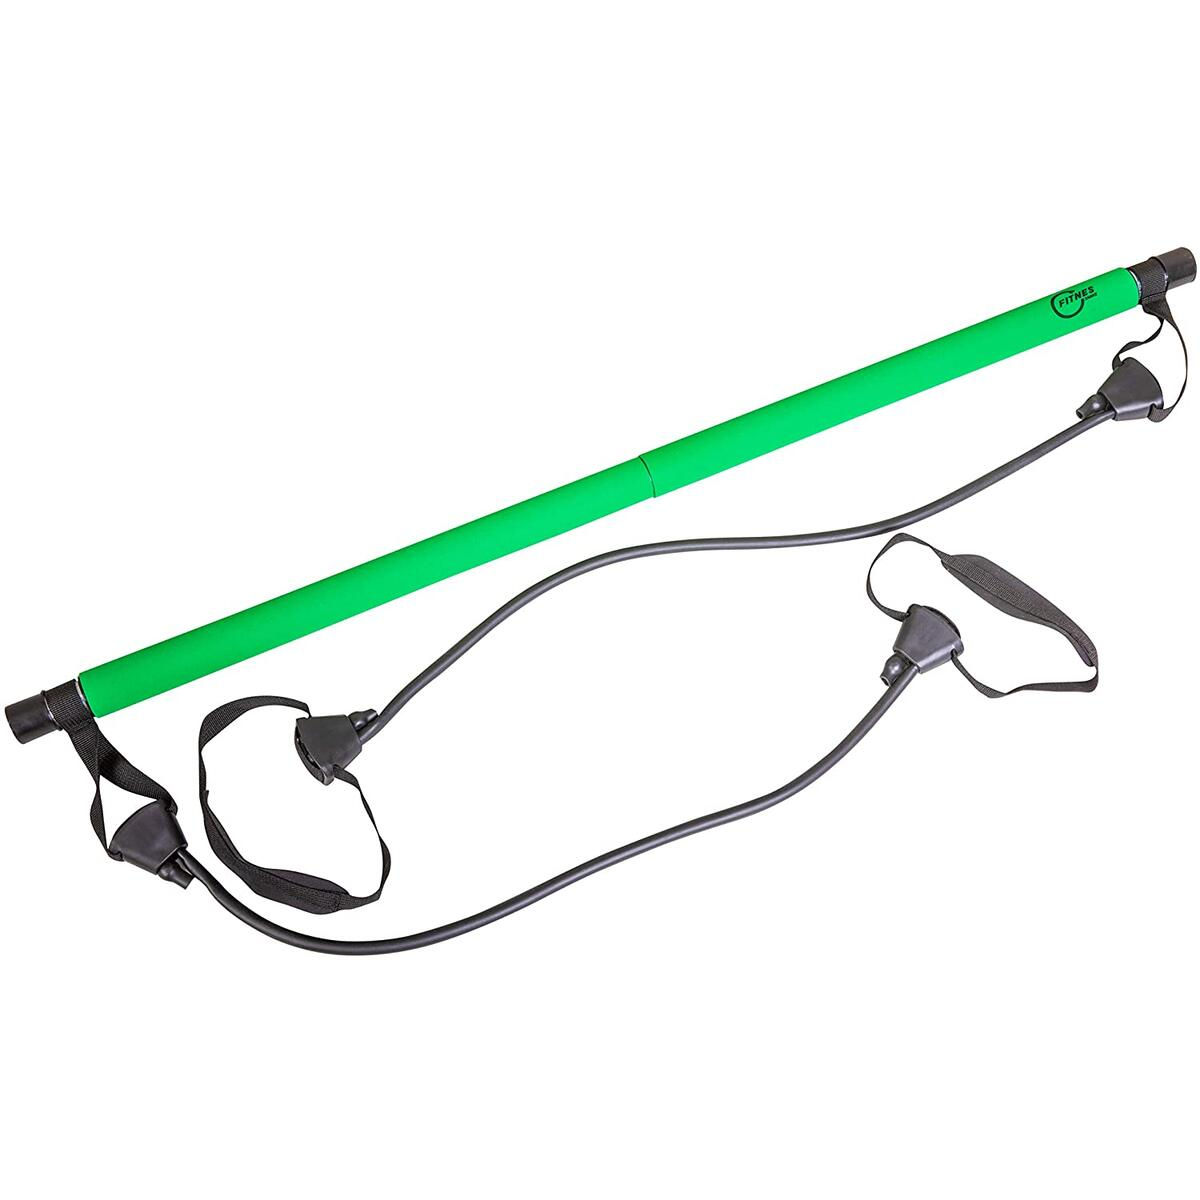 Fitnessnake Pilates Bar with Resistance Bands - Adjustable Resistance Bands - Portable Yoga Bar - Suitable For All Body Heights - Easy to Assemble Kit - For Men & Women